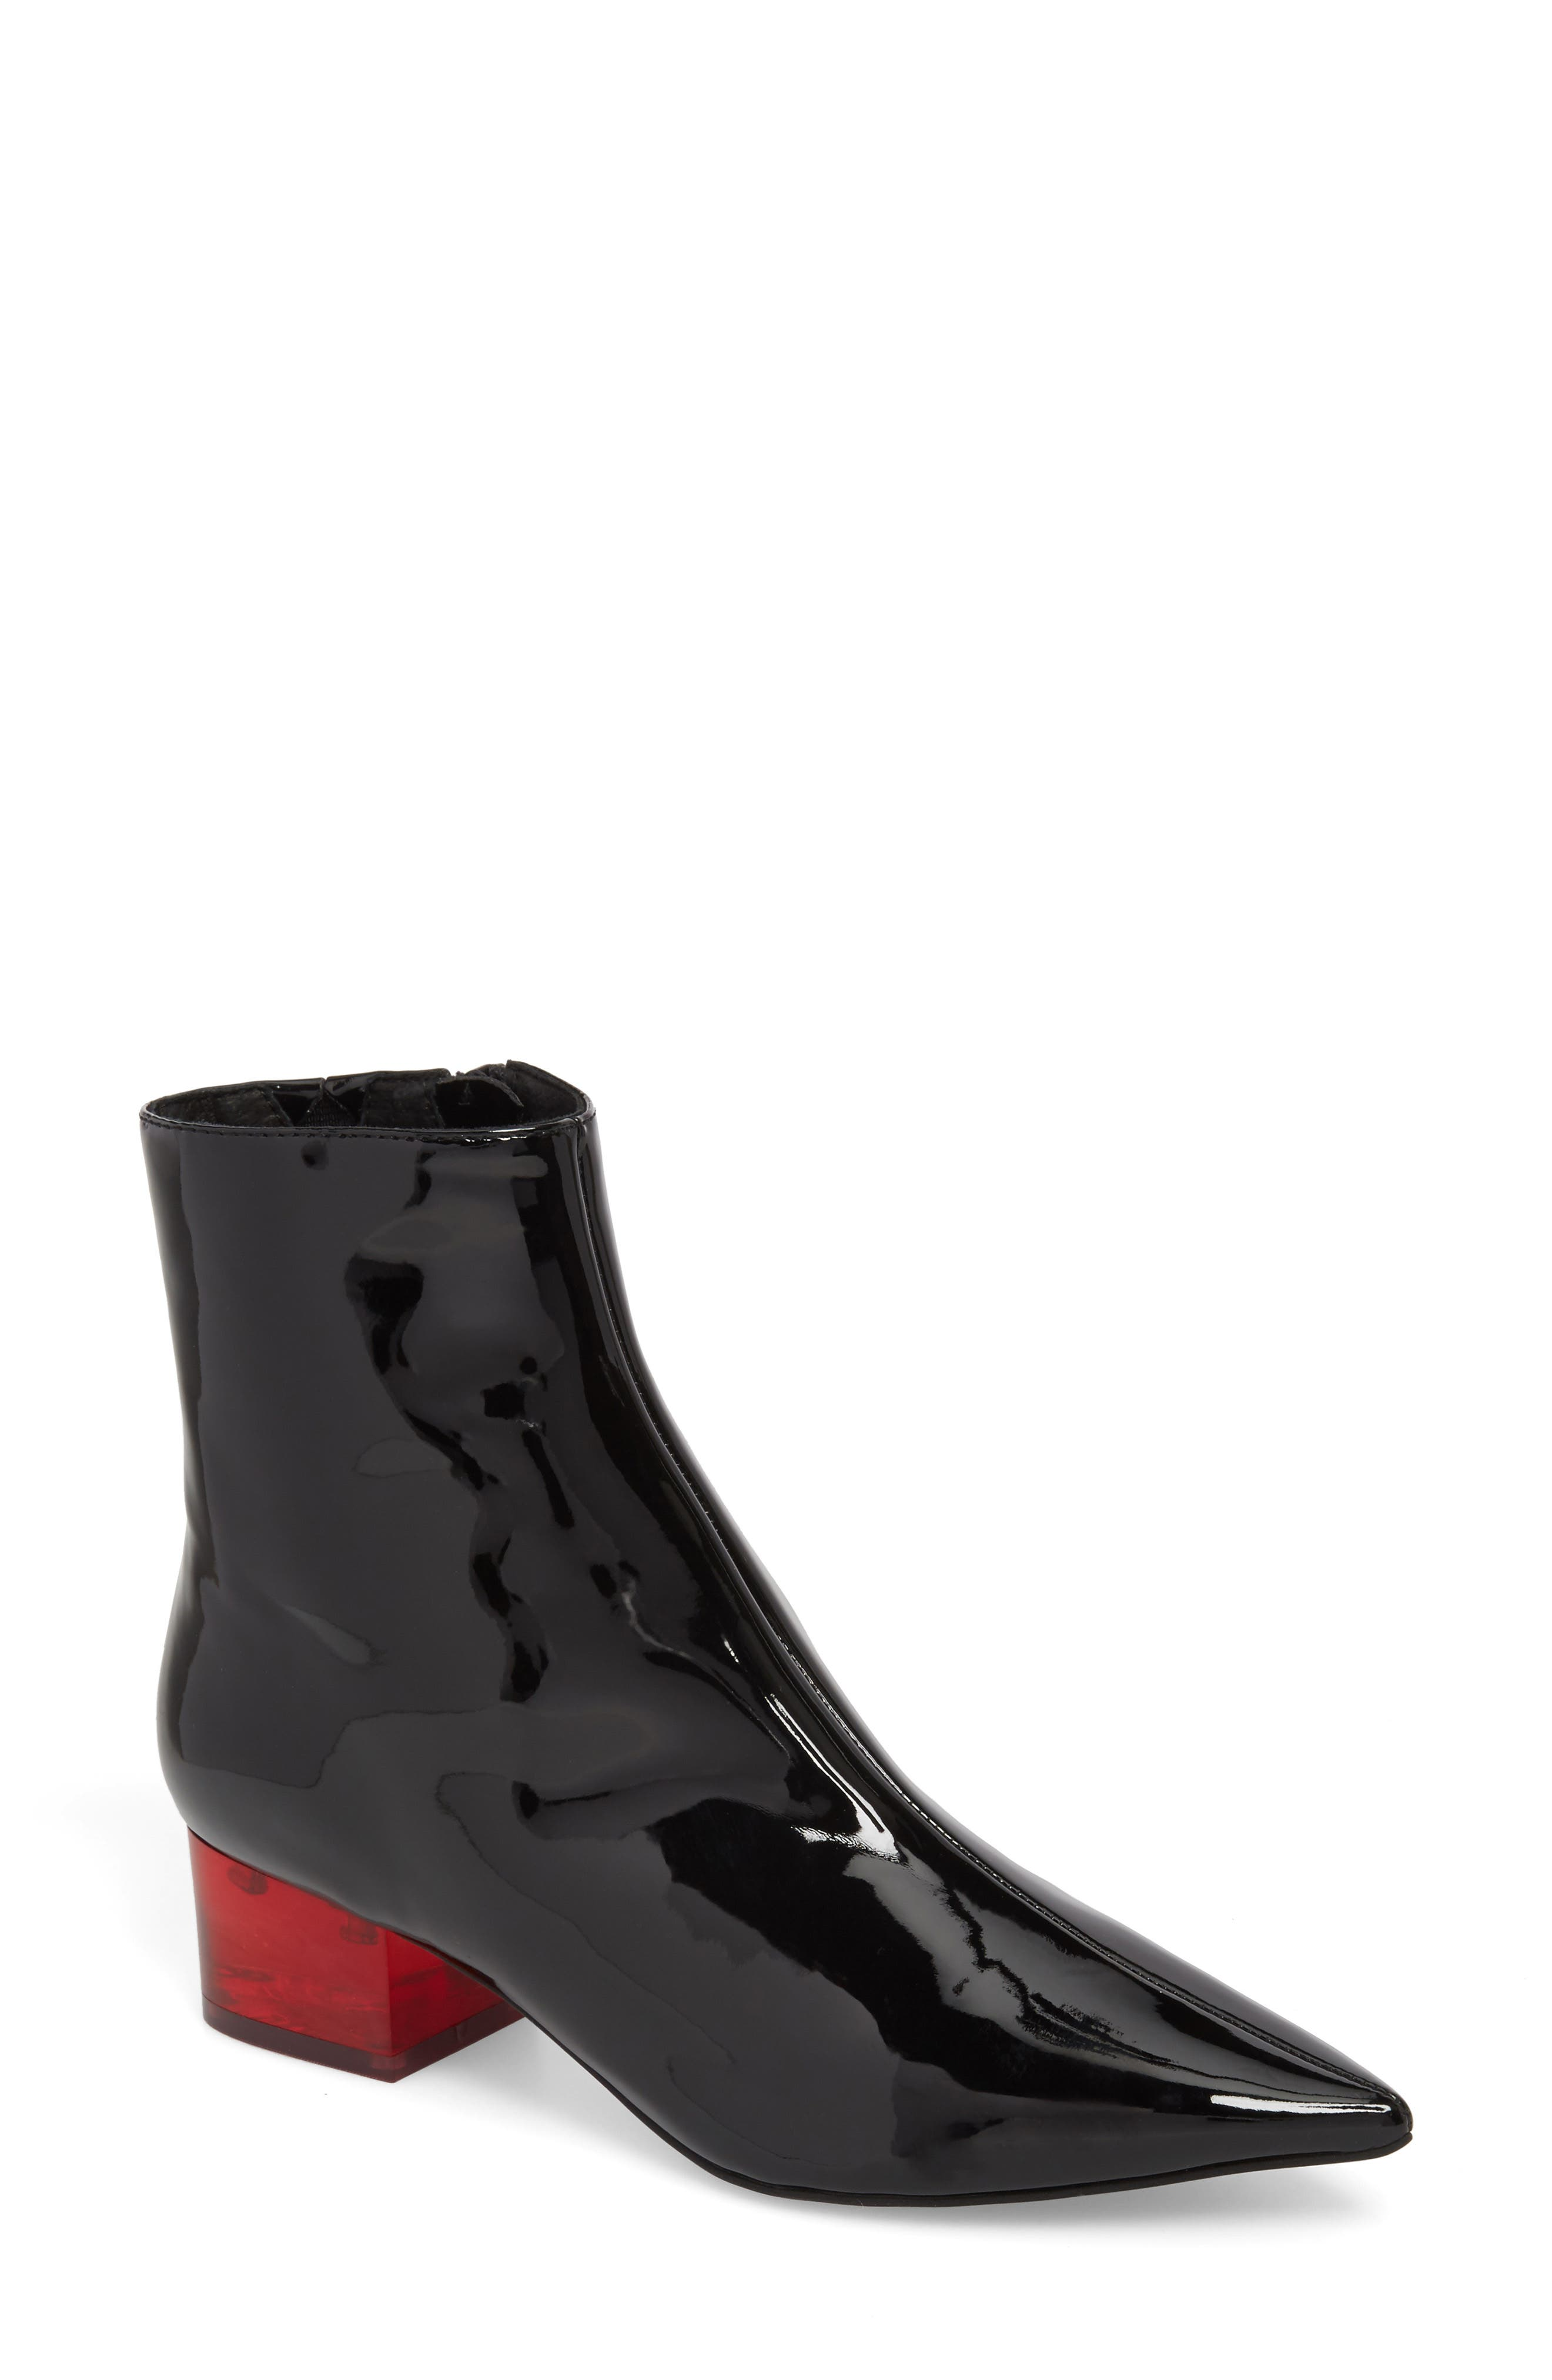 Luminous Statement Heel Bootie,                             Main thumbnail 1, color,                             Black/ Red Patent Leather